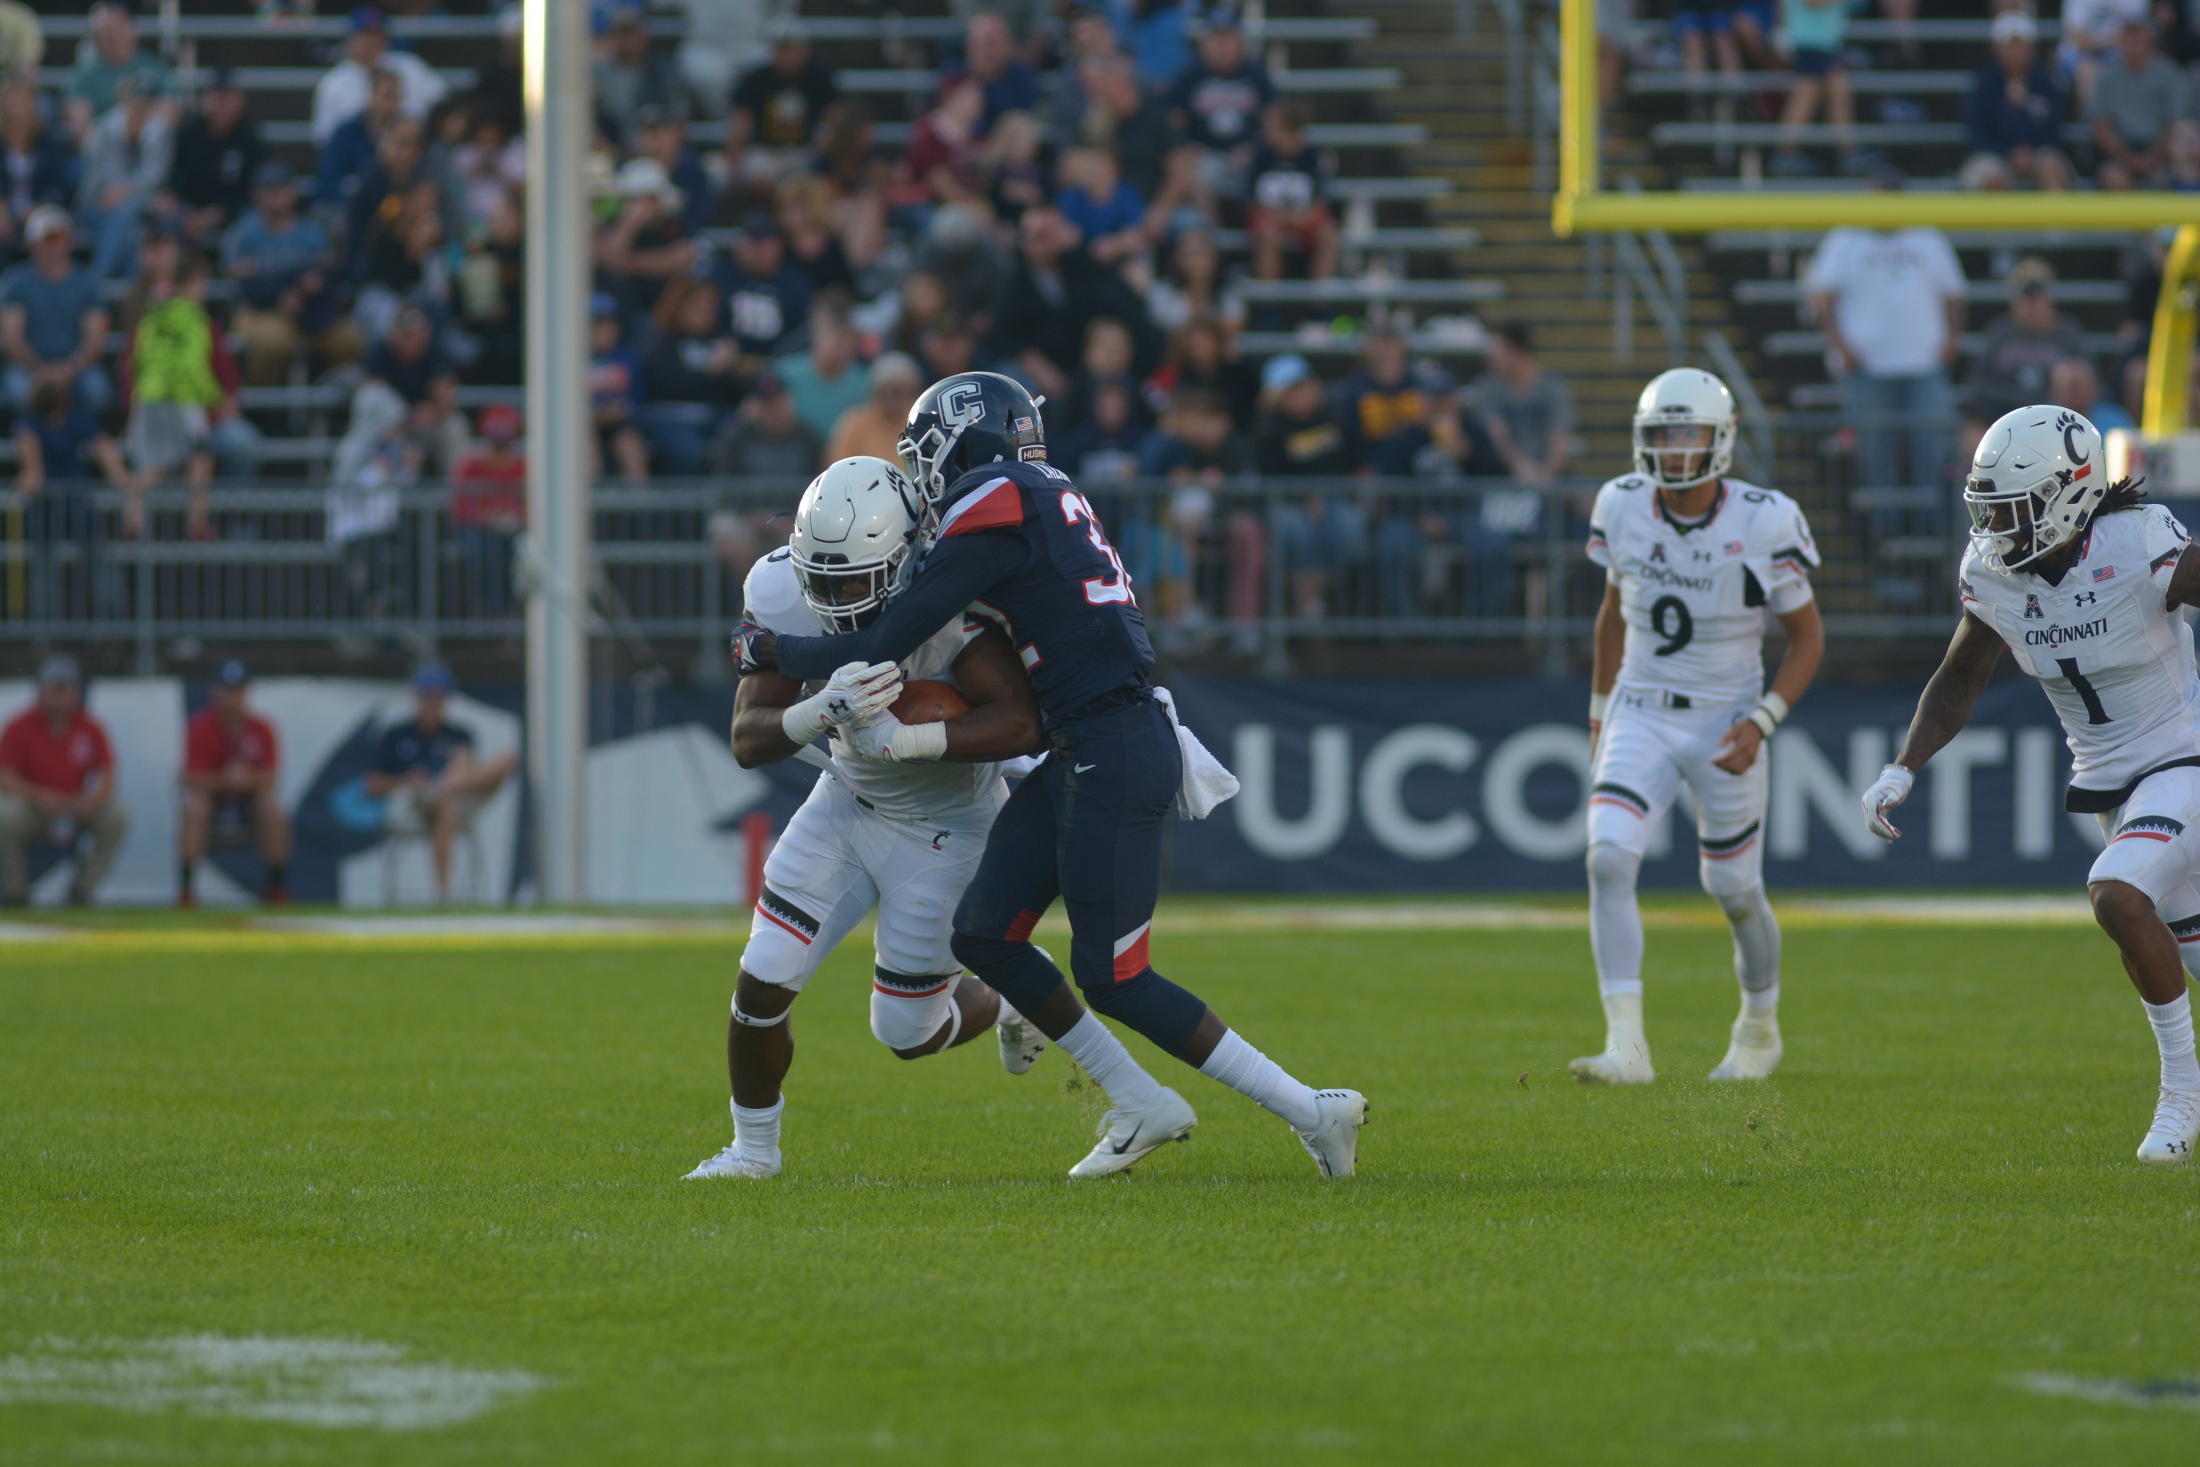 UConn plays against Cincinnati Saturday afternoon at Rentschler Field. The team was defeated 49-7. Their next home game will be Saturday October 27 (Nicholas Hampton/The Daily Campus).